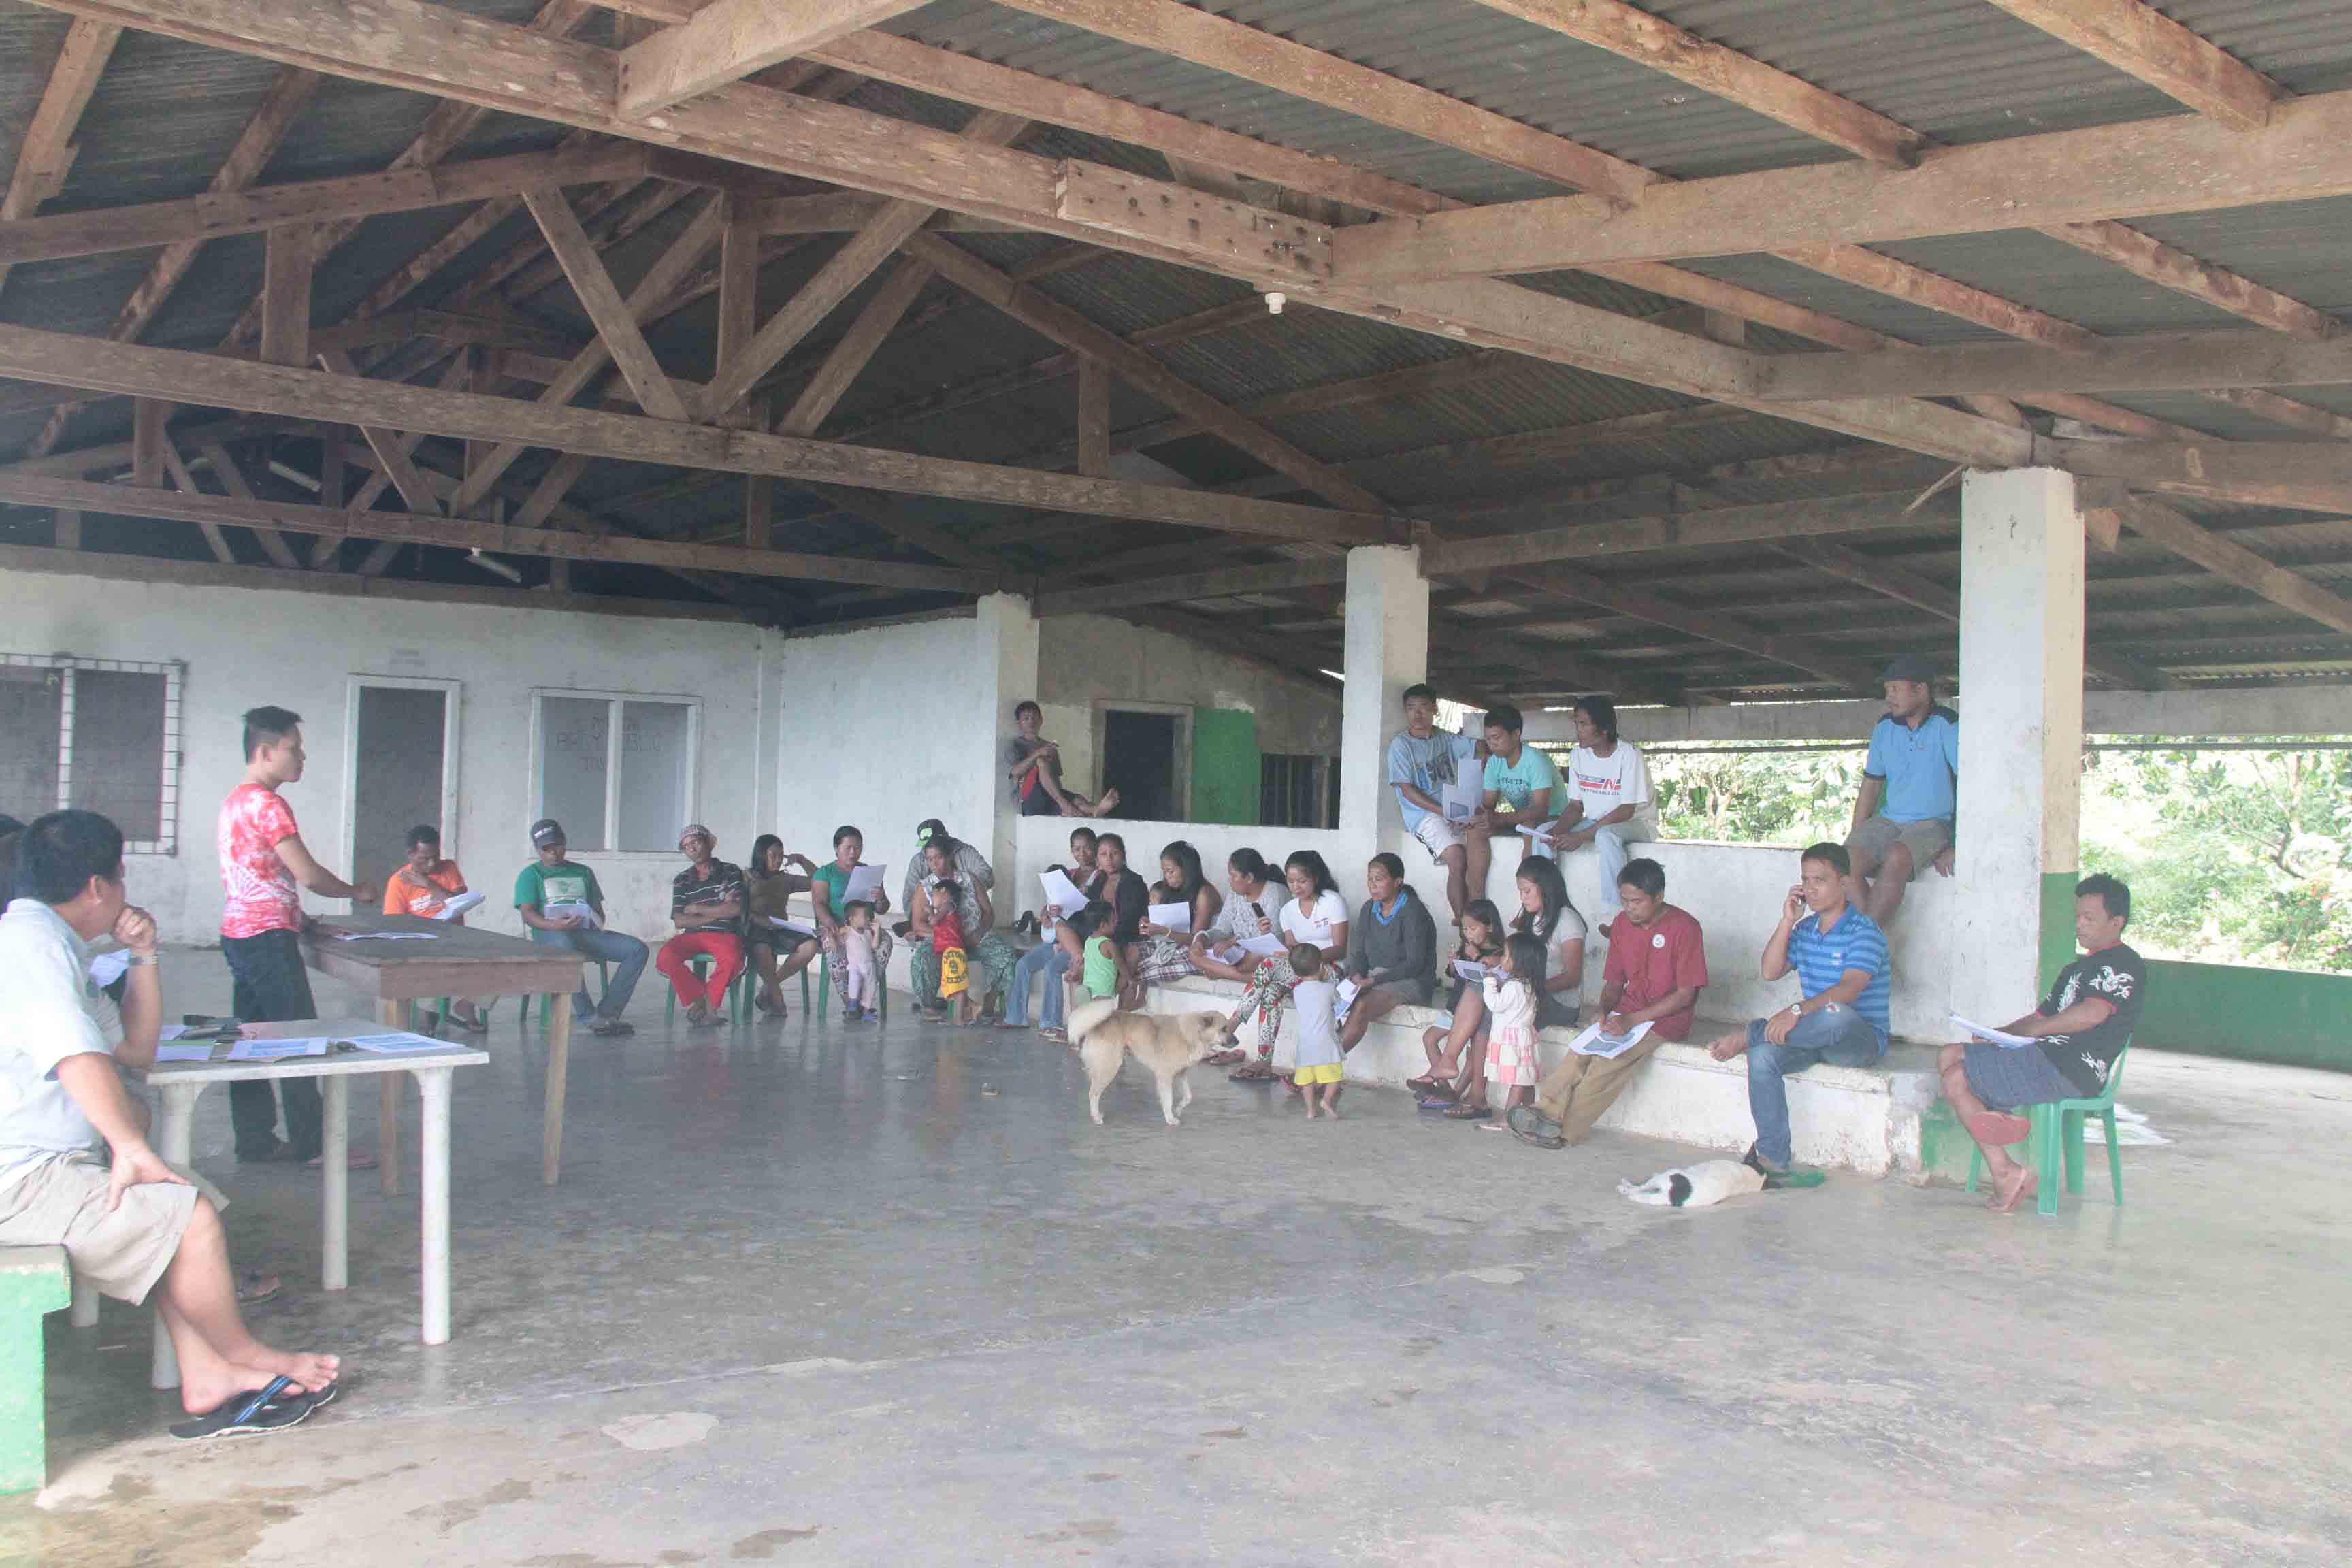 thephotos/2016/Community Dialogue (Small Potongan)(June 14, 2016)/IMG_3000.jpg